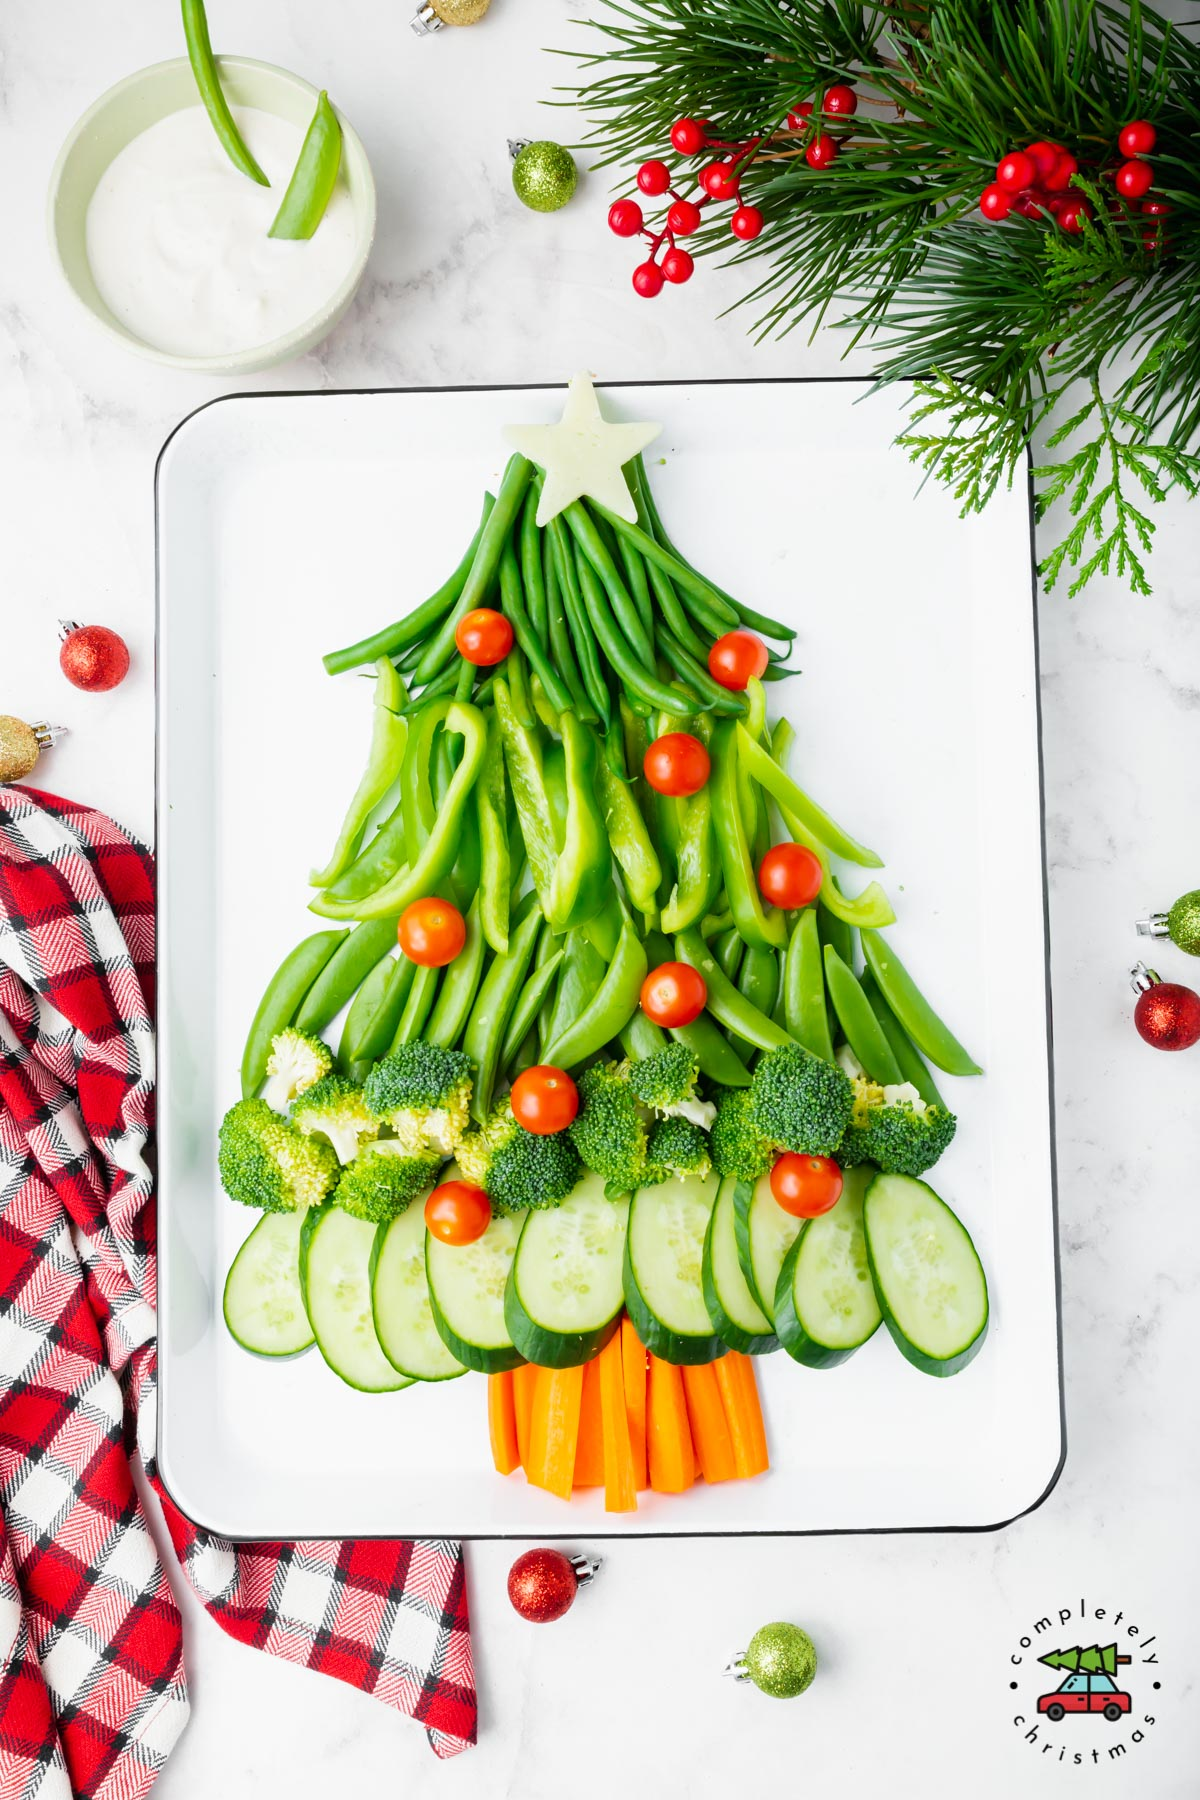 Vegetable platter in the shape of a Christmas tree on a white baking sheet.